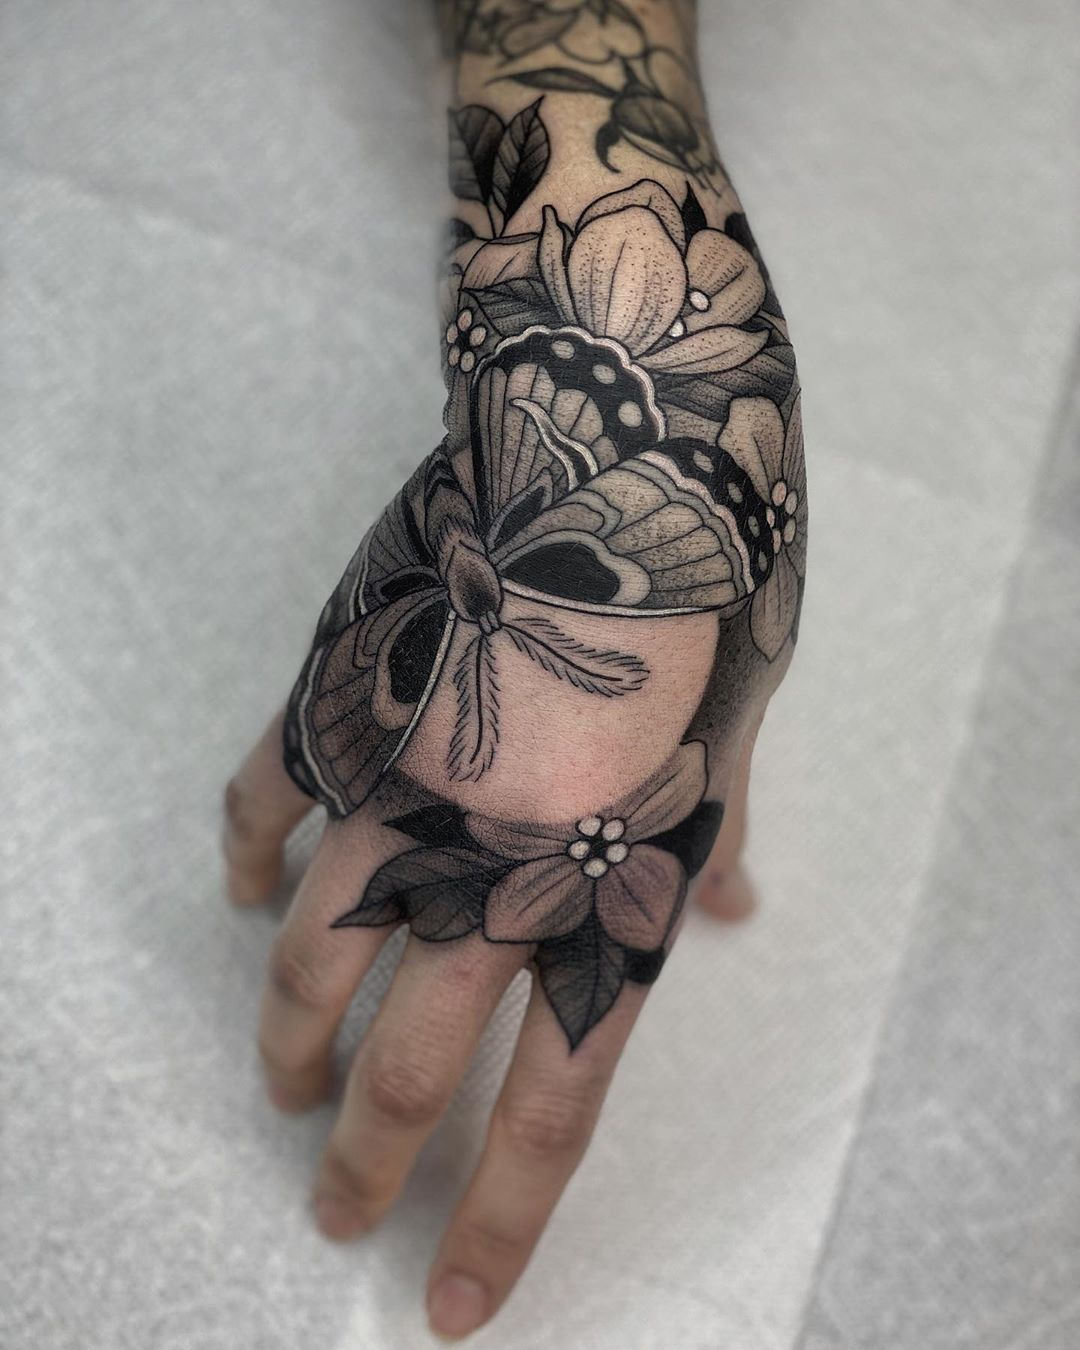 """Kyle Stacher's Instagram post: """"new south paw! thank you so much Anna! made at @TIGERCLUE - - - #tattoo #flash #traditional#blackwork #taot #blackworkerssubmission…"""""""